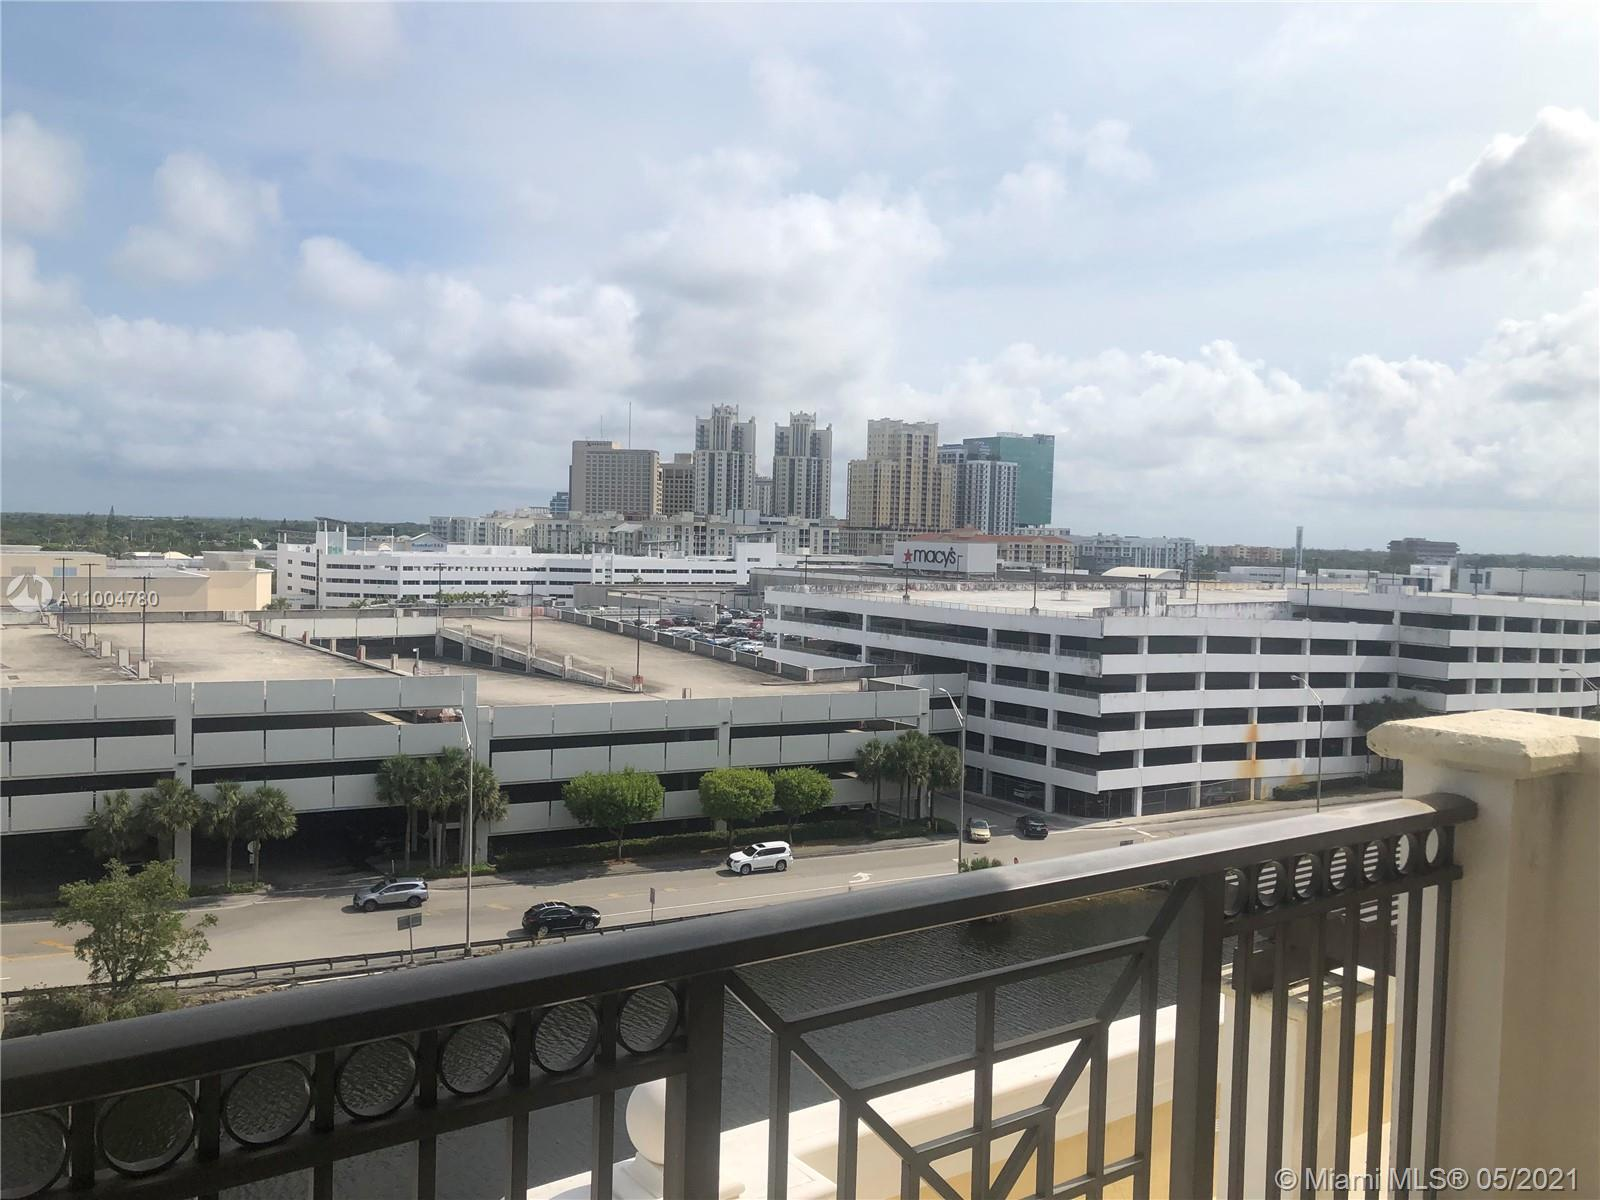 Spacious 2/2 luxury condo. 5 star lifestyle. European kitchen with stainless steel appliances and granite countertops. Amazing sunrise views from balcony. Building features private lobby, 24 hour front desk, security service, gym, sauna, jacuzzi, pool. Walking distance from Dadeland mall, Dadeland metro station, fast access to US1 and expressway.  City living at its best!